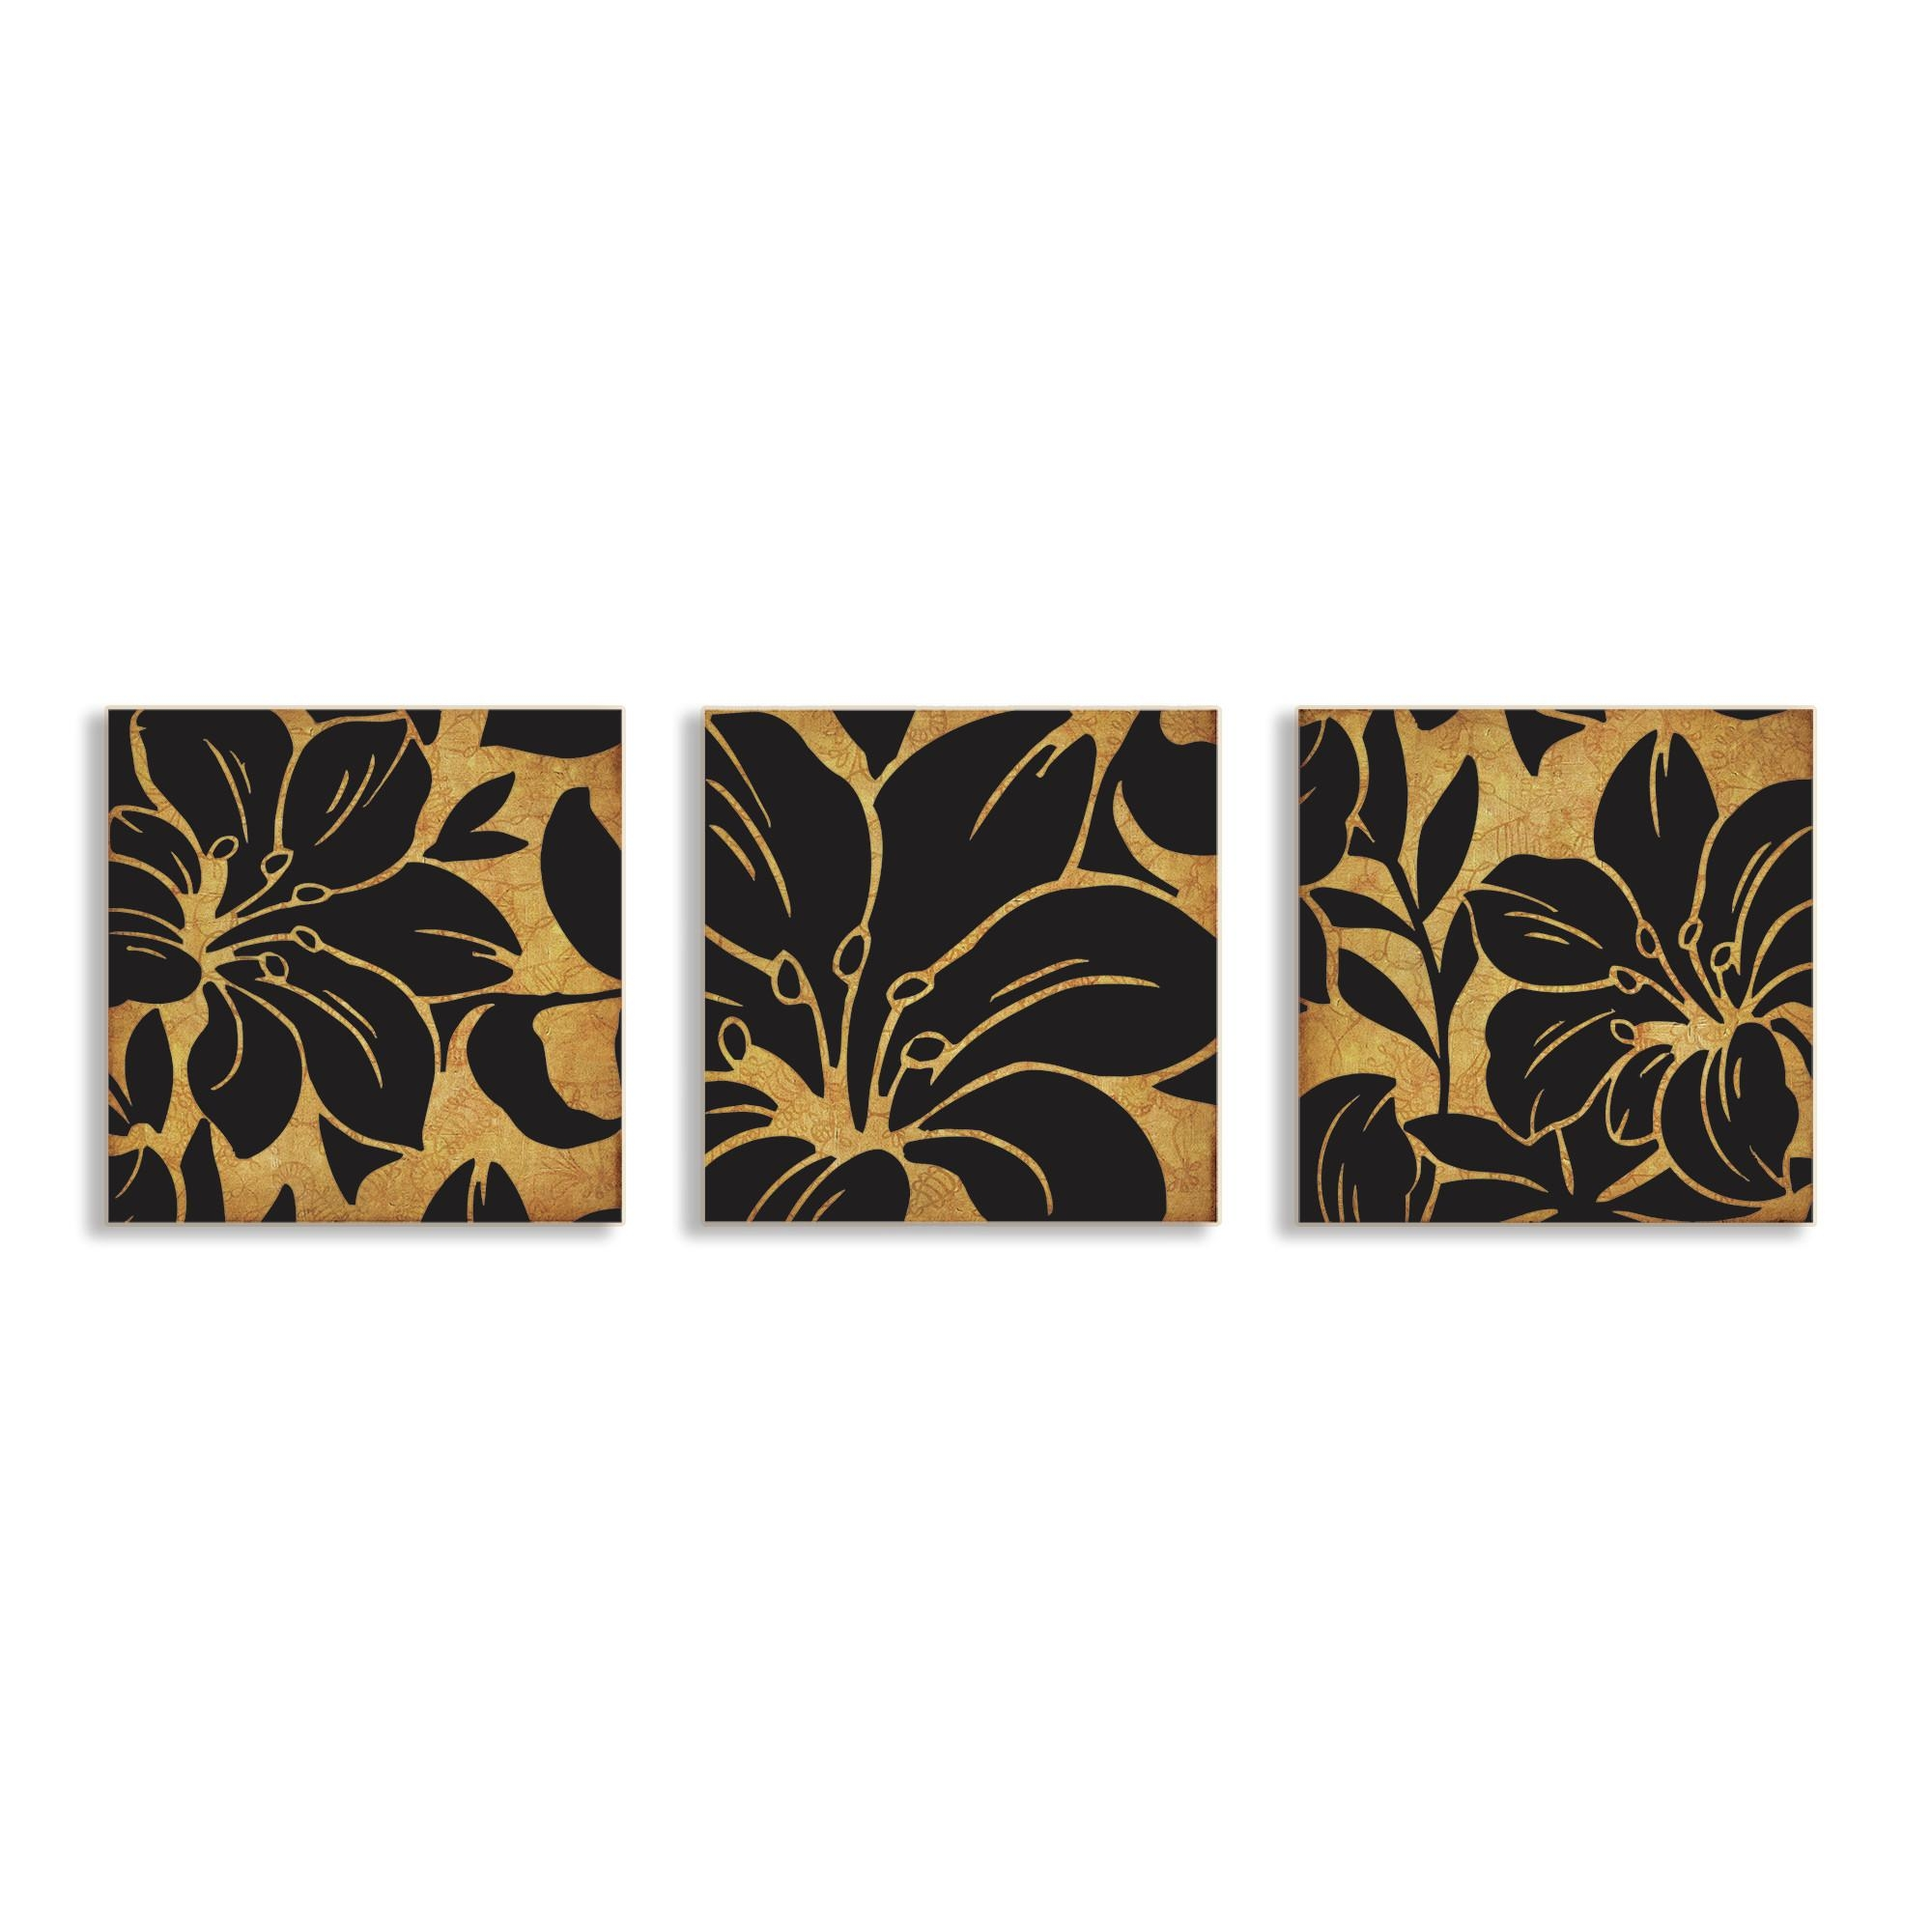 3 piece canvas wall art within 3 piece wall art sets image 2